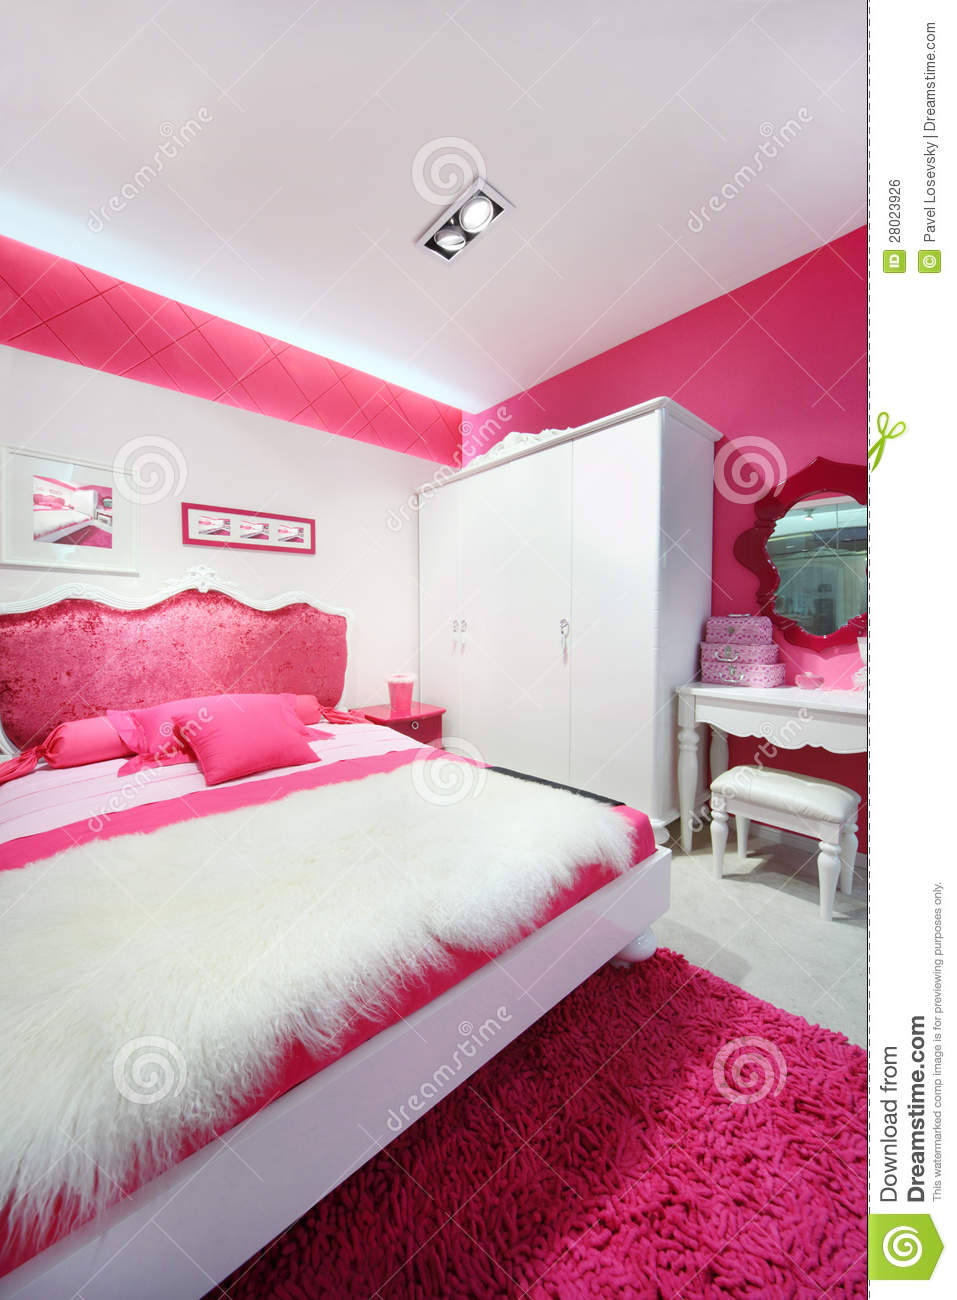 belle chambre coucher rose blanche image libre de droits image 28023926. Black Bedroom Furniture Sets. Home Design Ideas